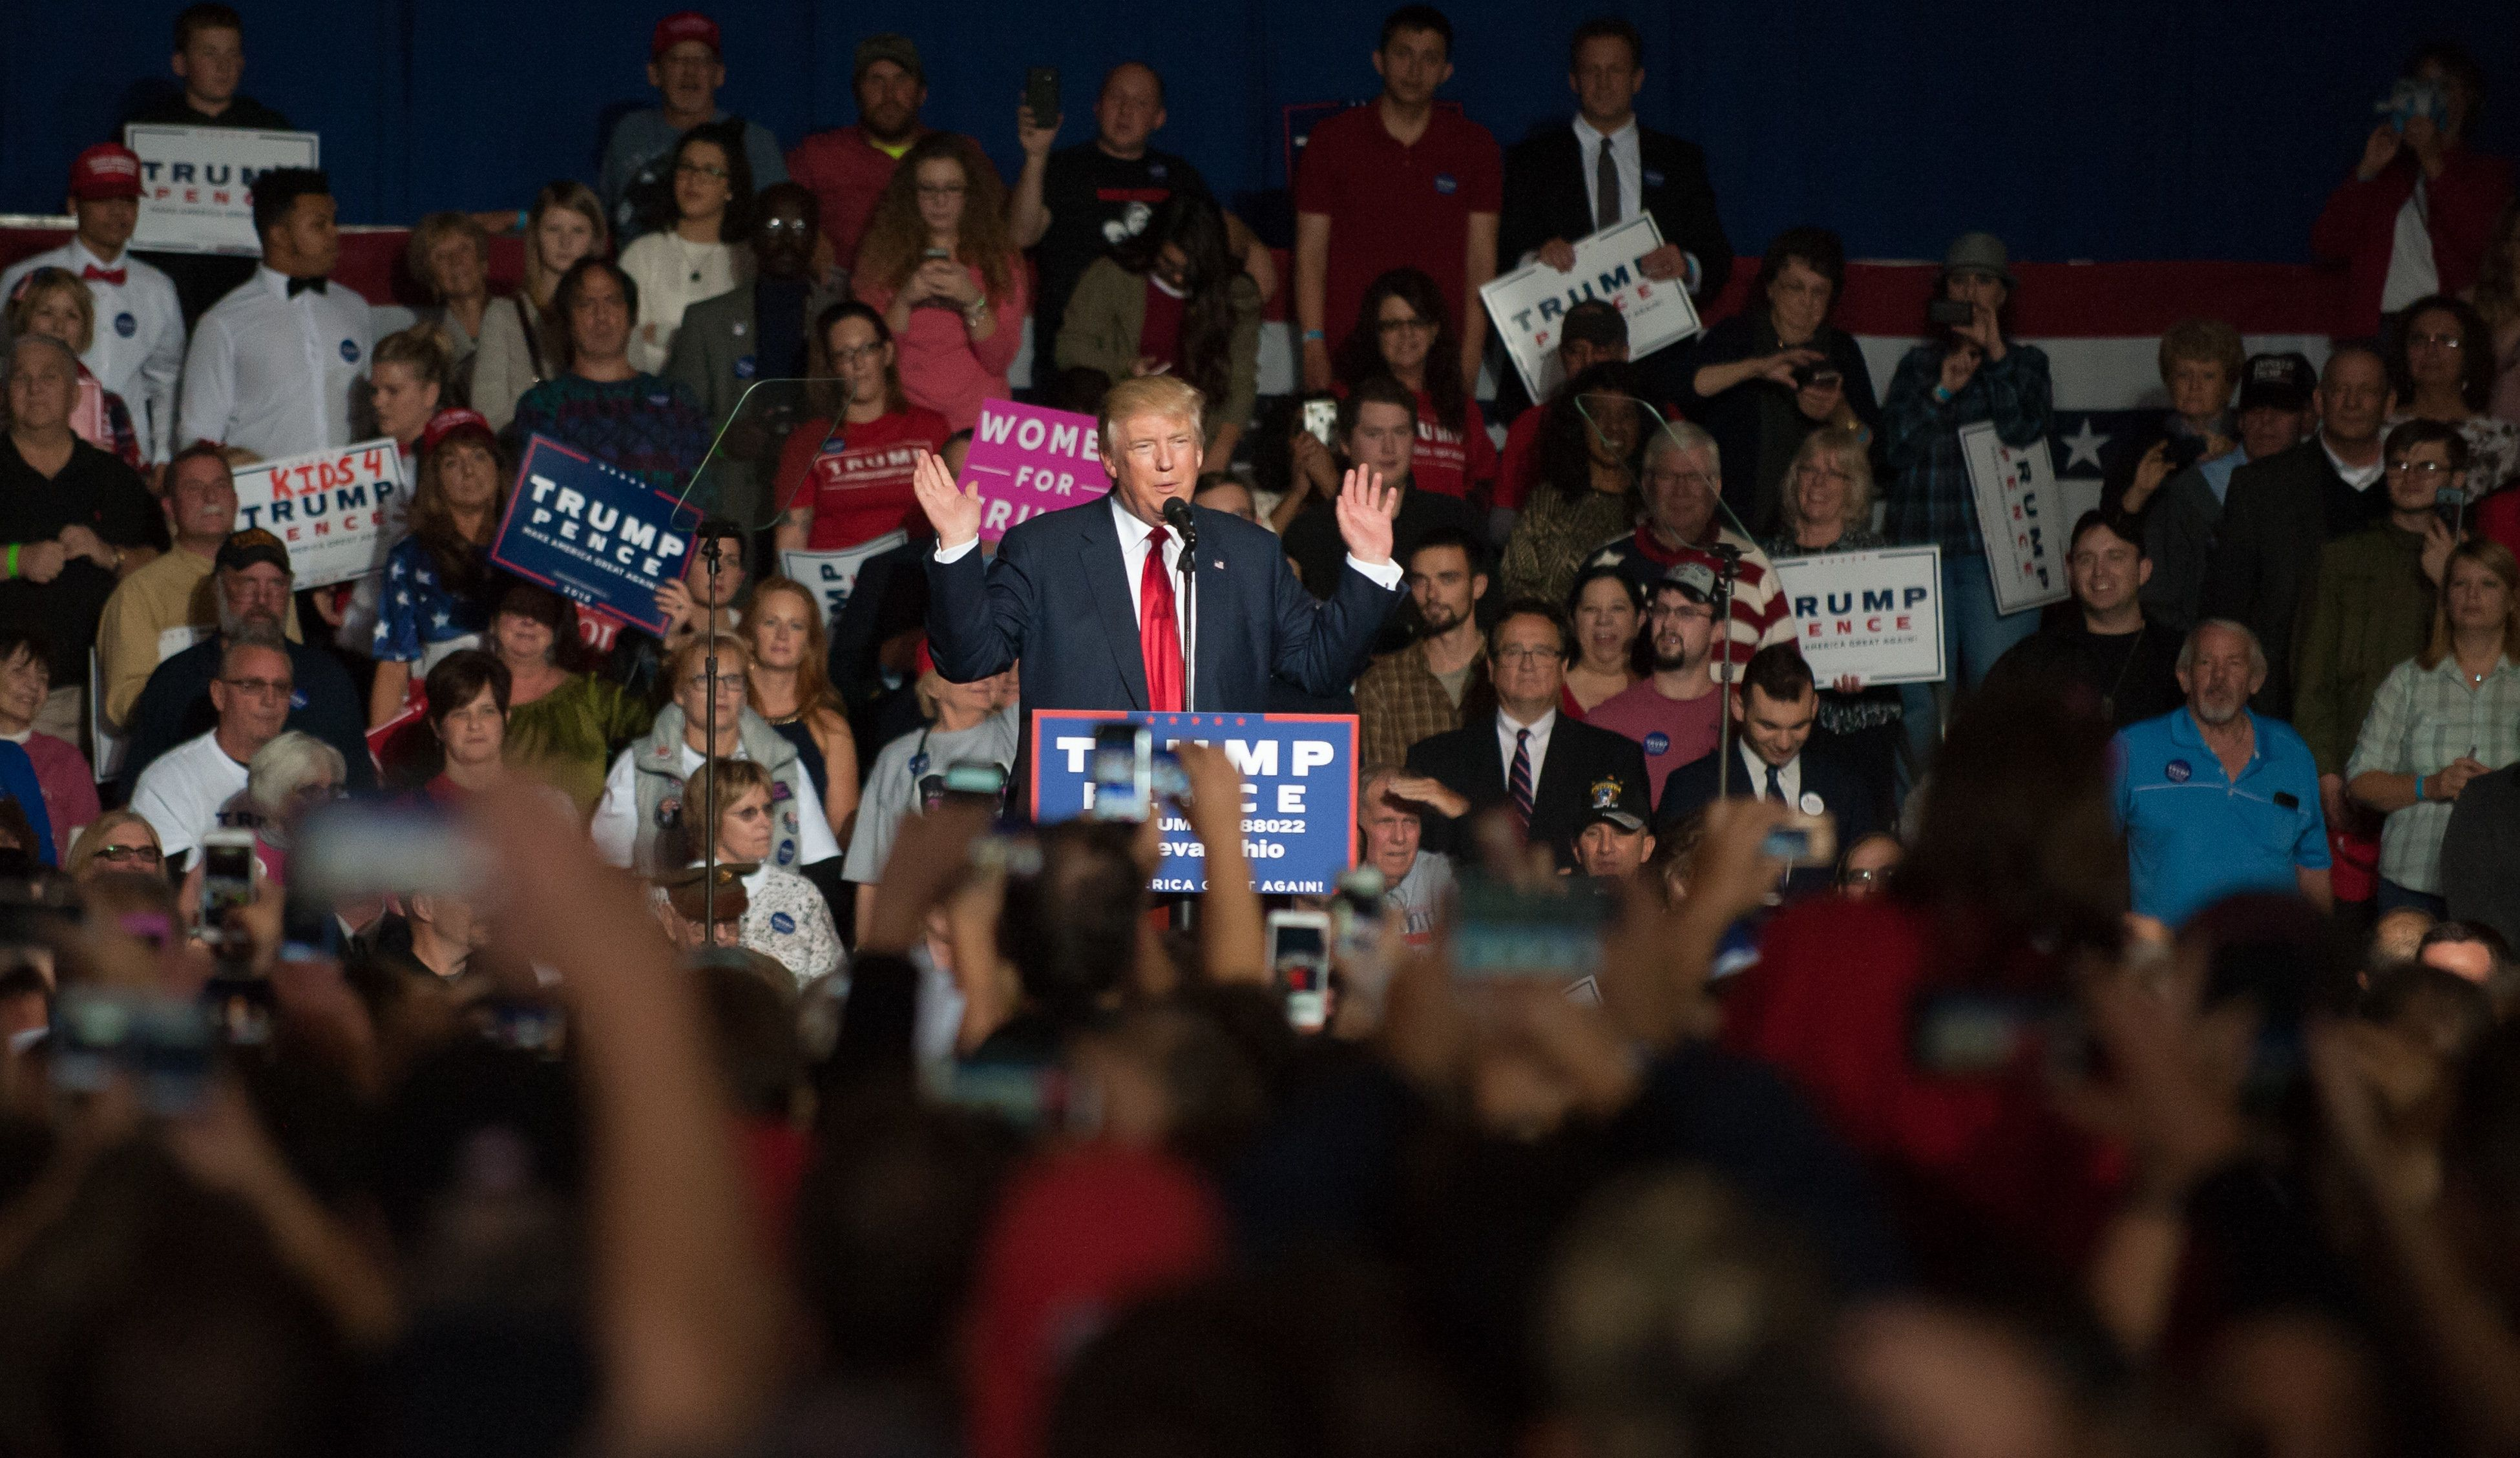 GENEVA, OH - OCTOBER 27: Republican presidential nominee Donald Trump speaks at a campaign rally on October 27, 2016 at the Spire Institute in Geneva, Ohio. Trump spent the day campaigning in Ohio. With less than two weeks to go until election day, Donald Trump continues to campaign in tight battleground states.(Photo by Jeff Swensen/Getty Images)